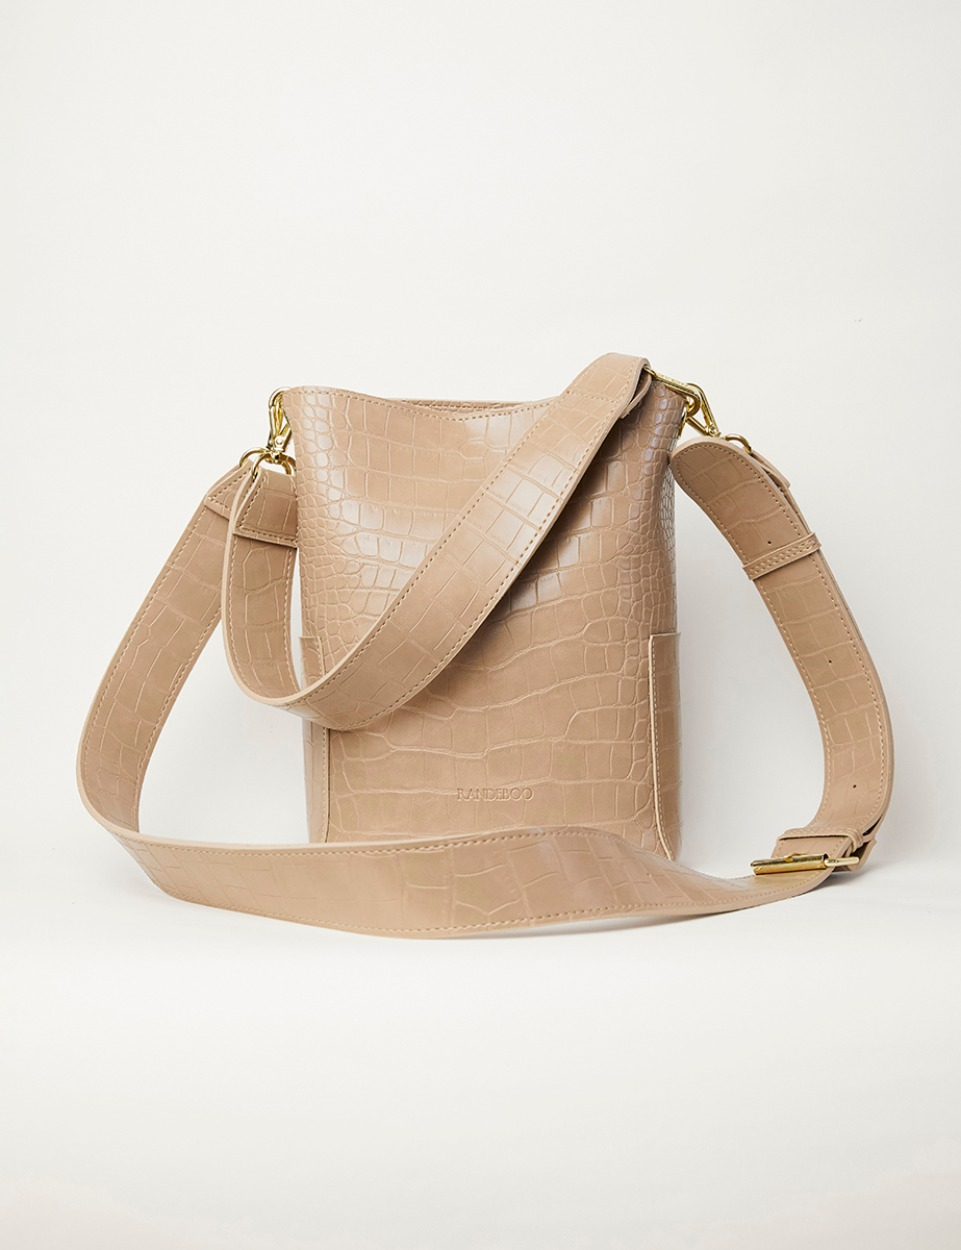 【PRE】RB croco bucket bag (beige)